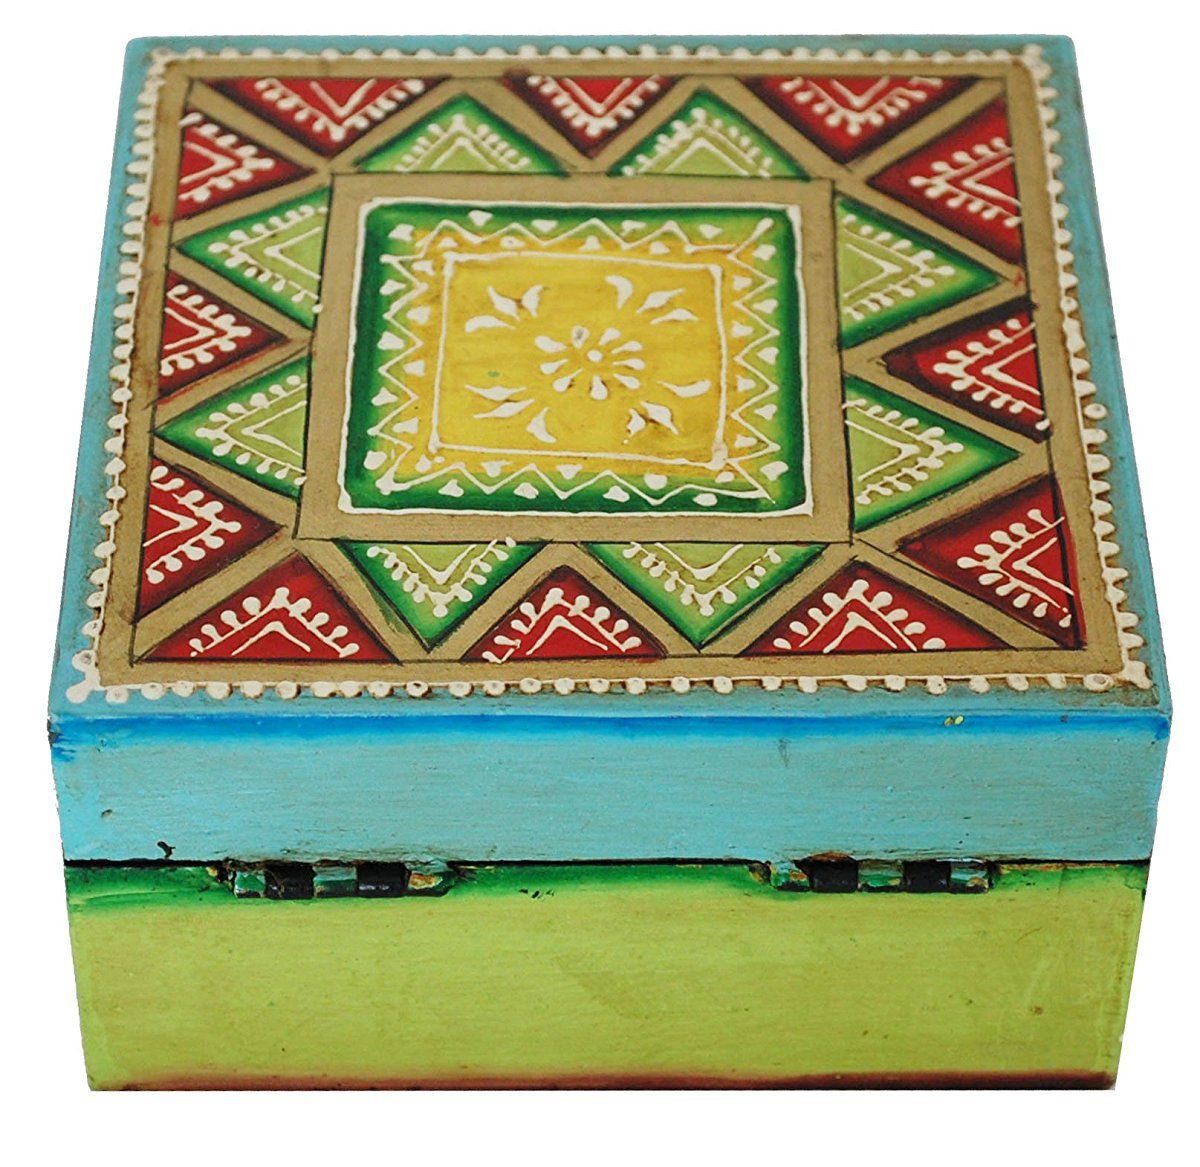 Where To Buy Decorative Boxes Wooden Decorative Box  Painted Wooden Boxes  Pinterest